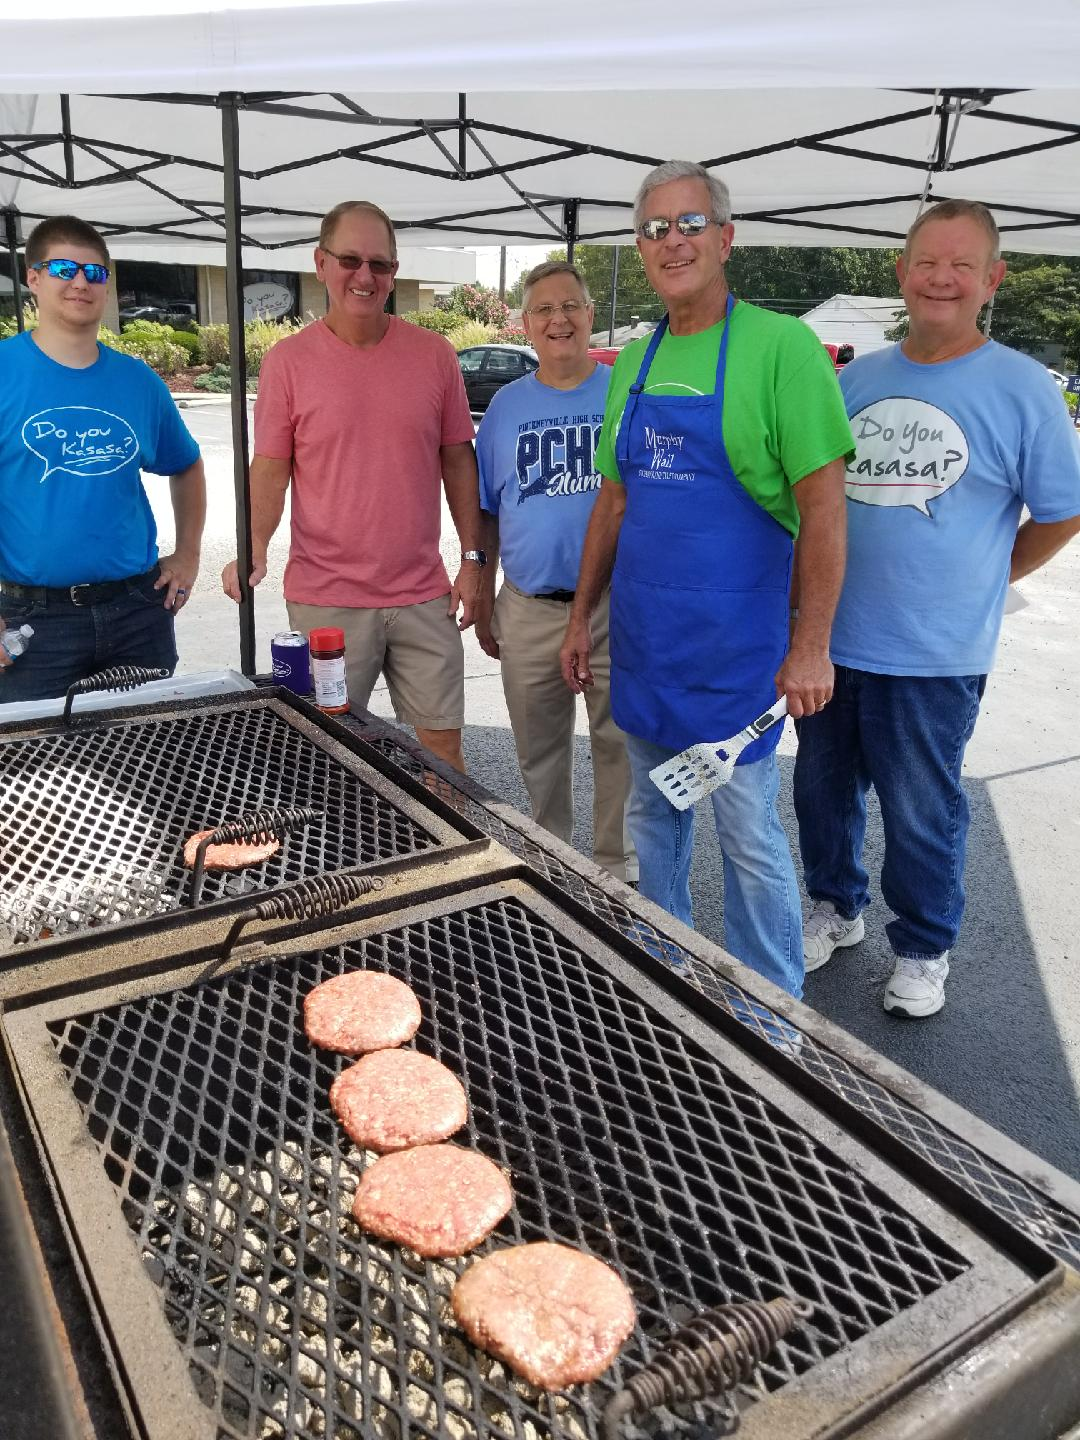 Murphy-Wall State Bank employees are grilling hamburgers for the 2017 Customer Appreciation Day